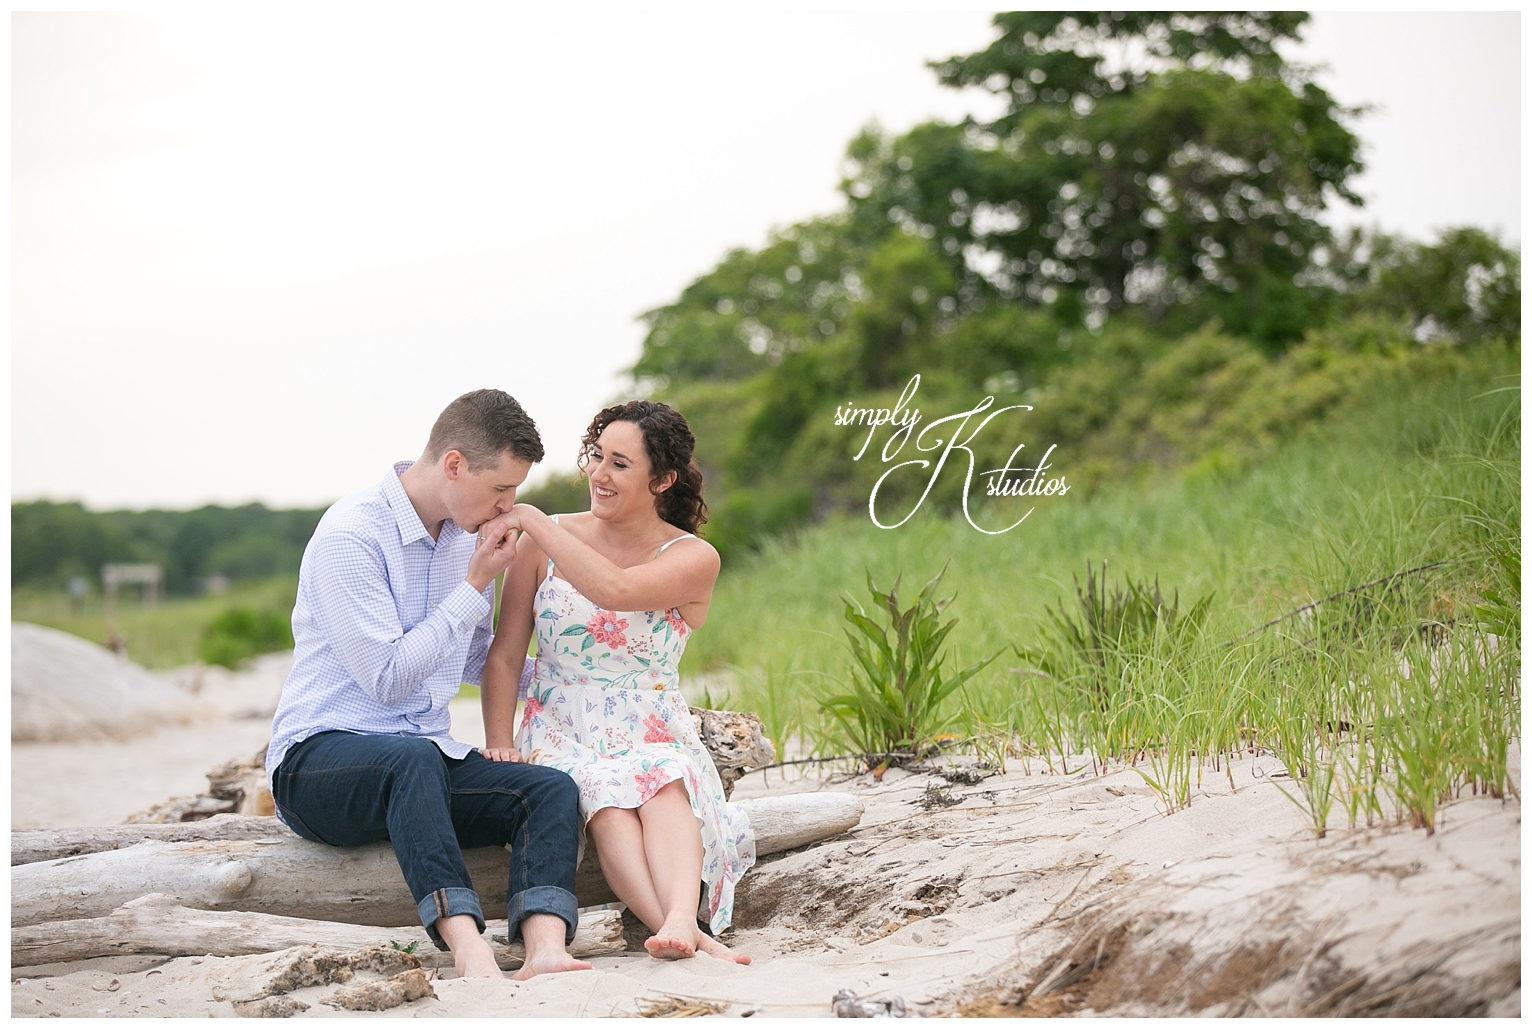 Beach Engagement Sessions in CT.jpg